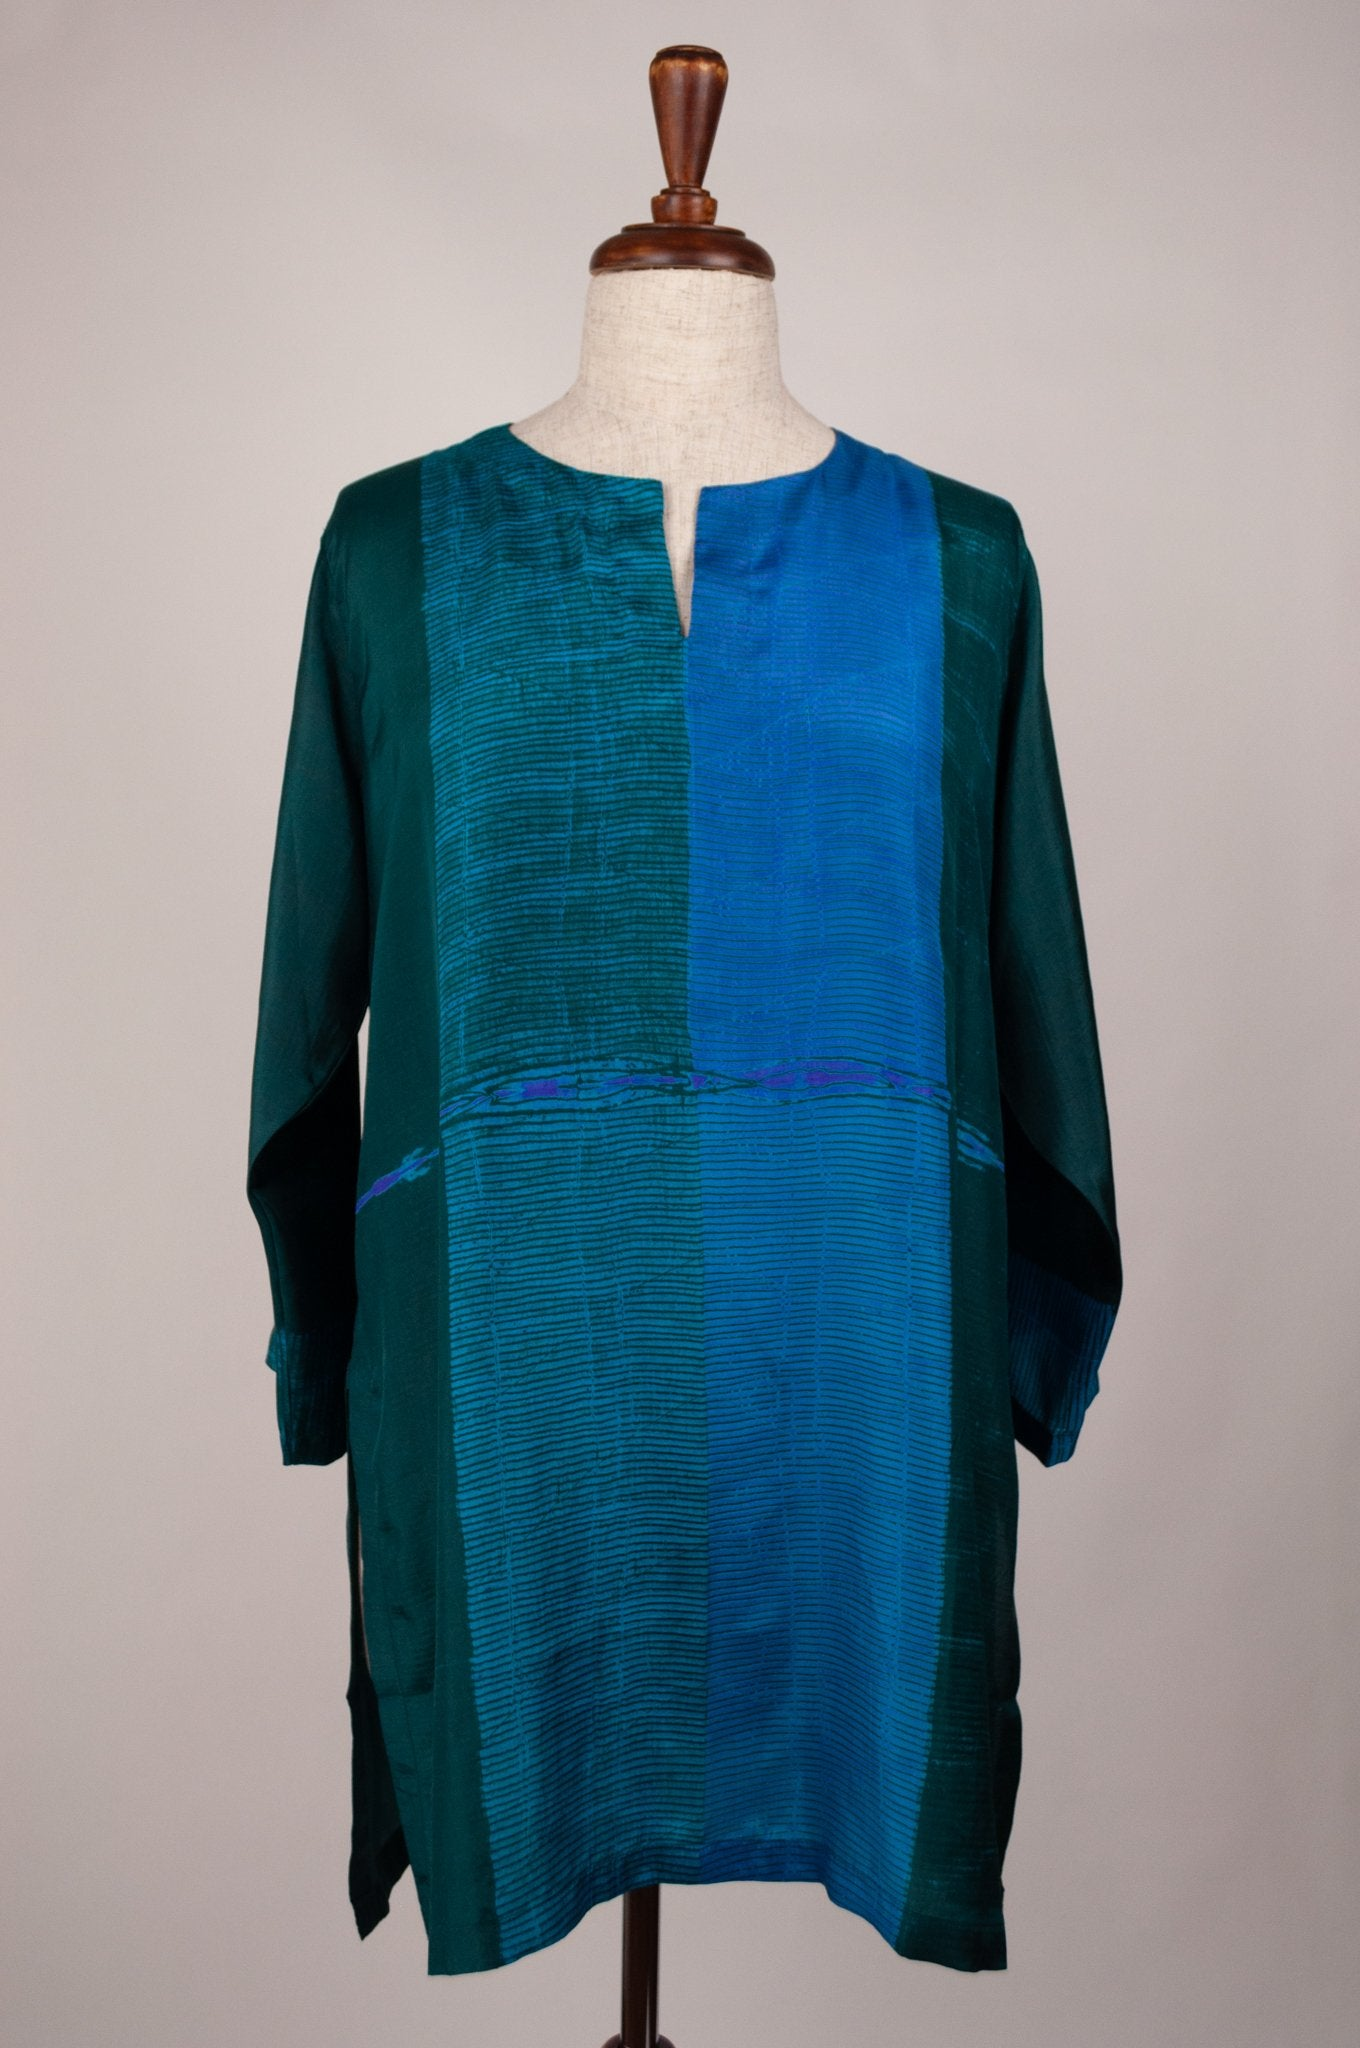 Pure silk shibori dyed silk kurta top in peacock tones of emerald and turquoise.